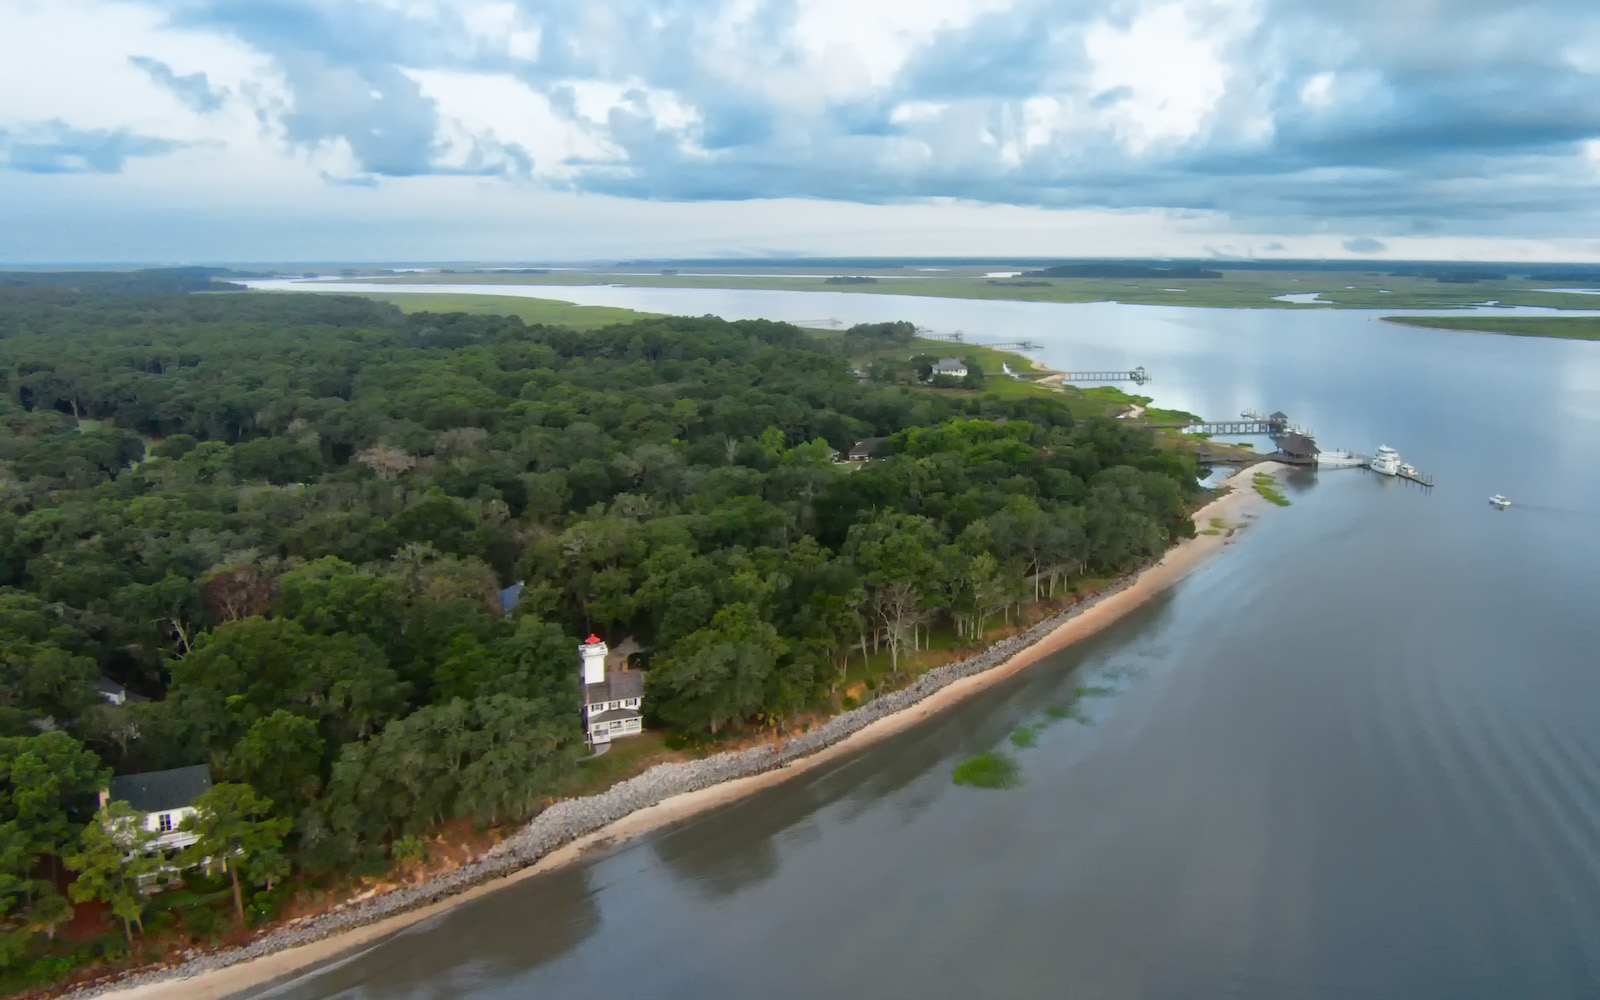 Haig Point Lighthouse Daufuskie Island South Carolina overview